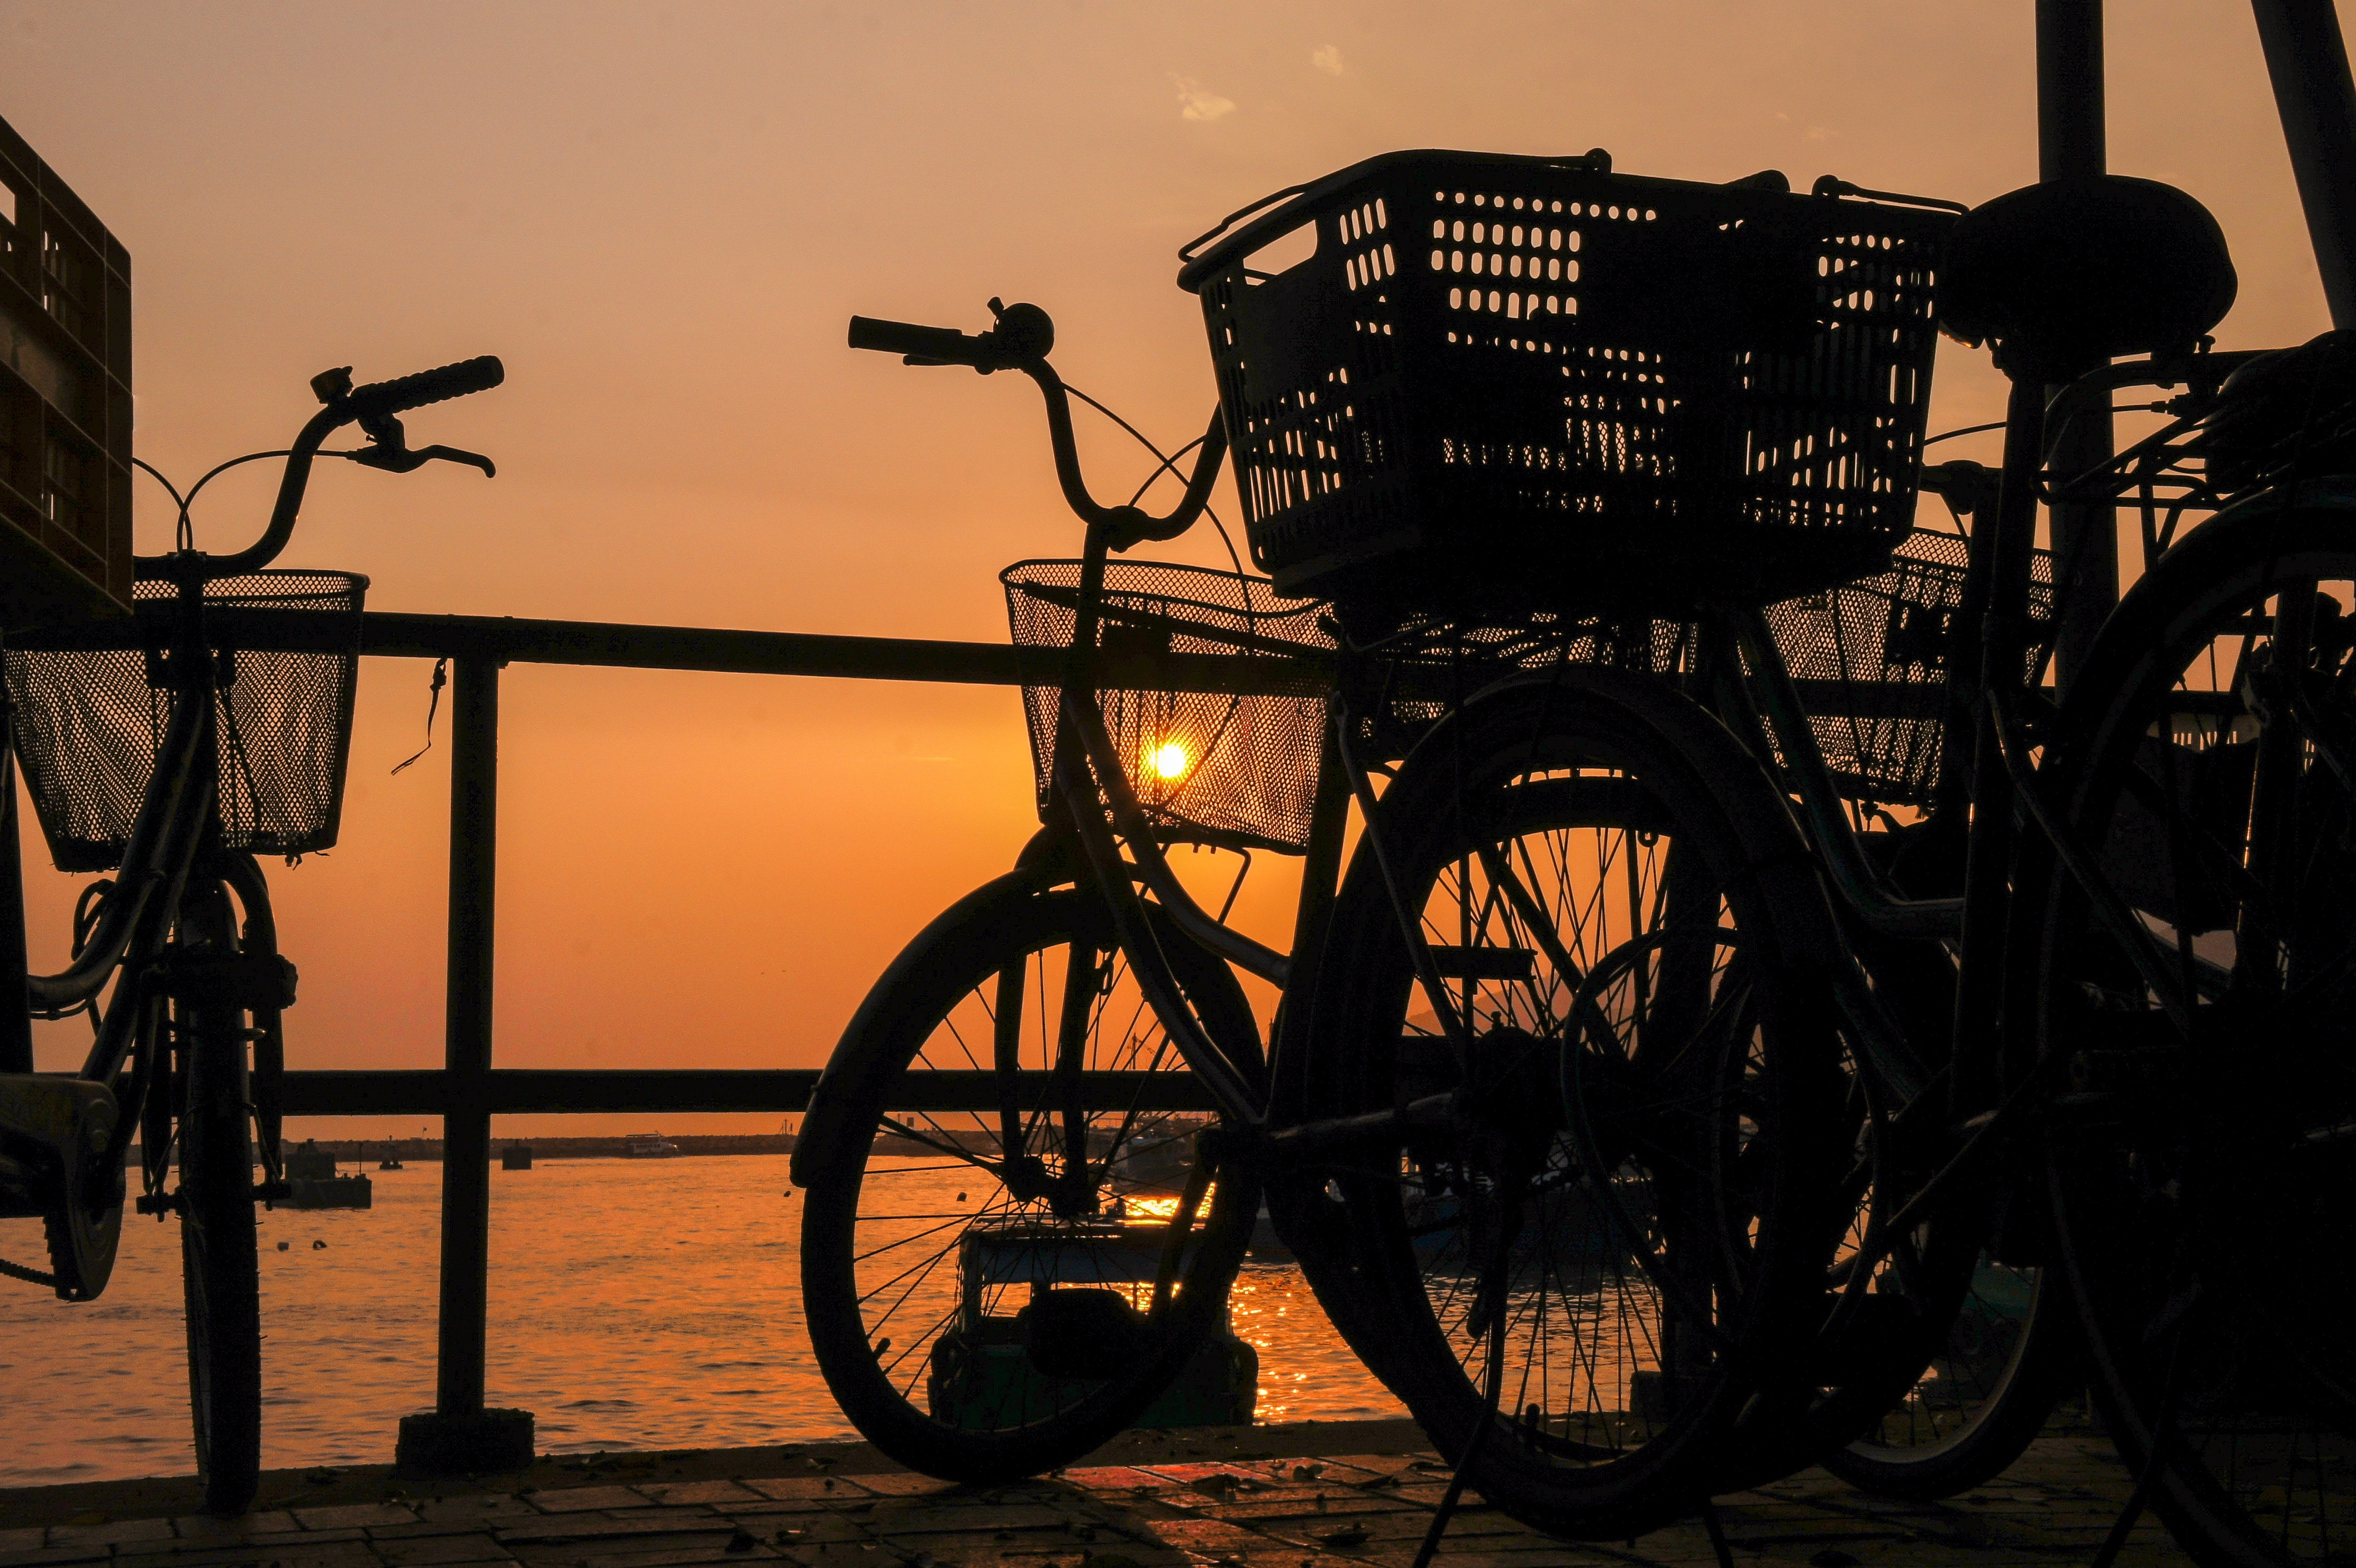 Silhouette of bicycle photo